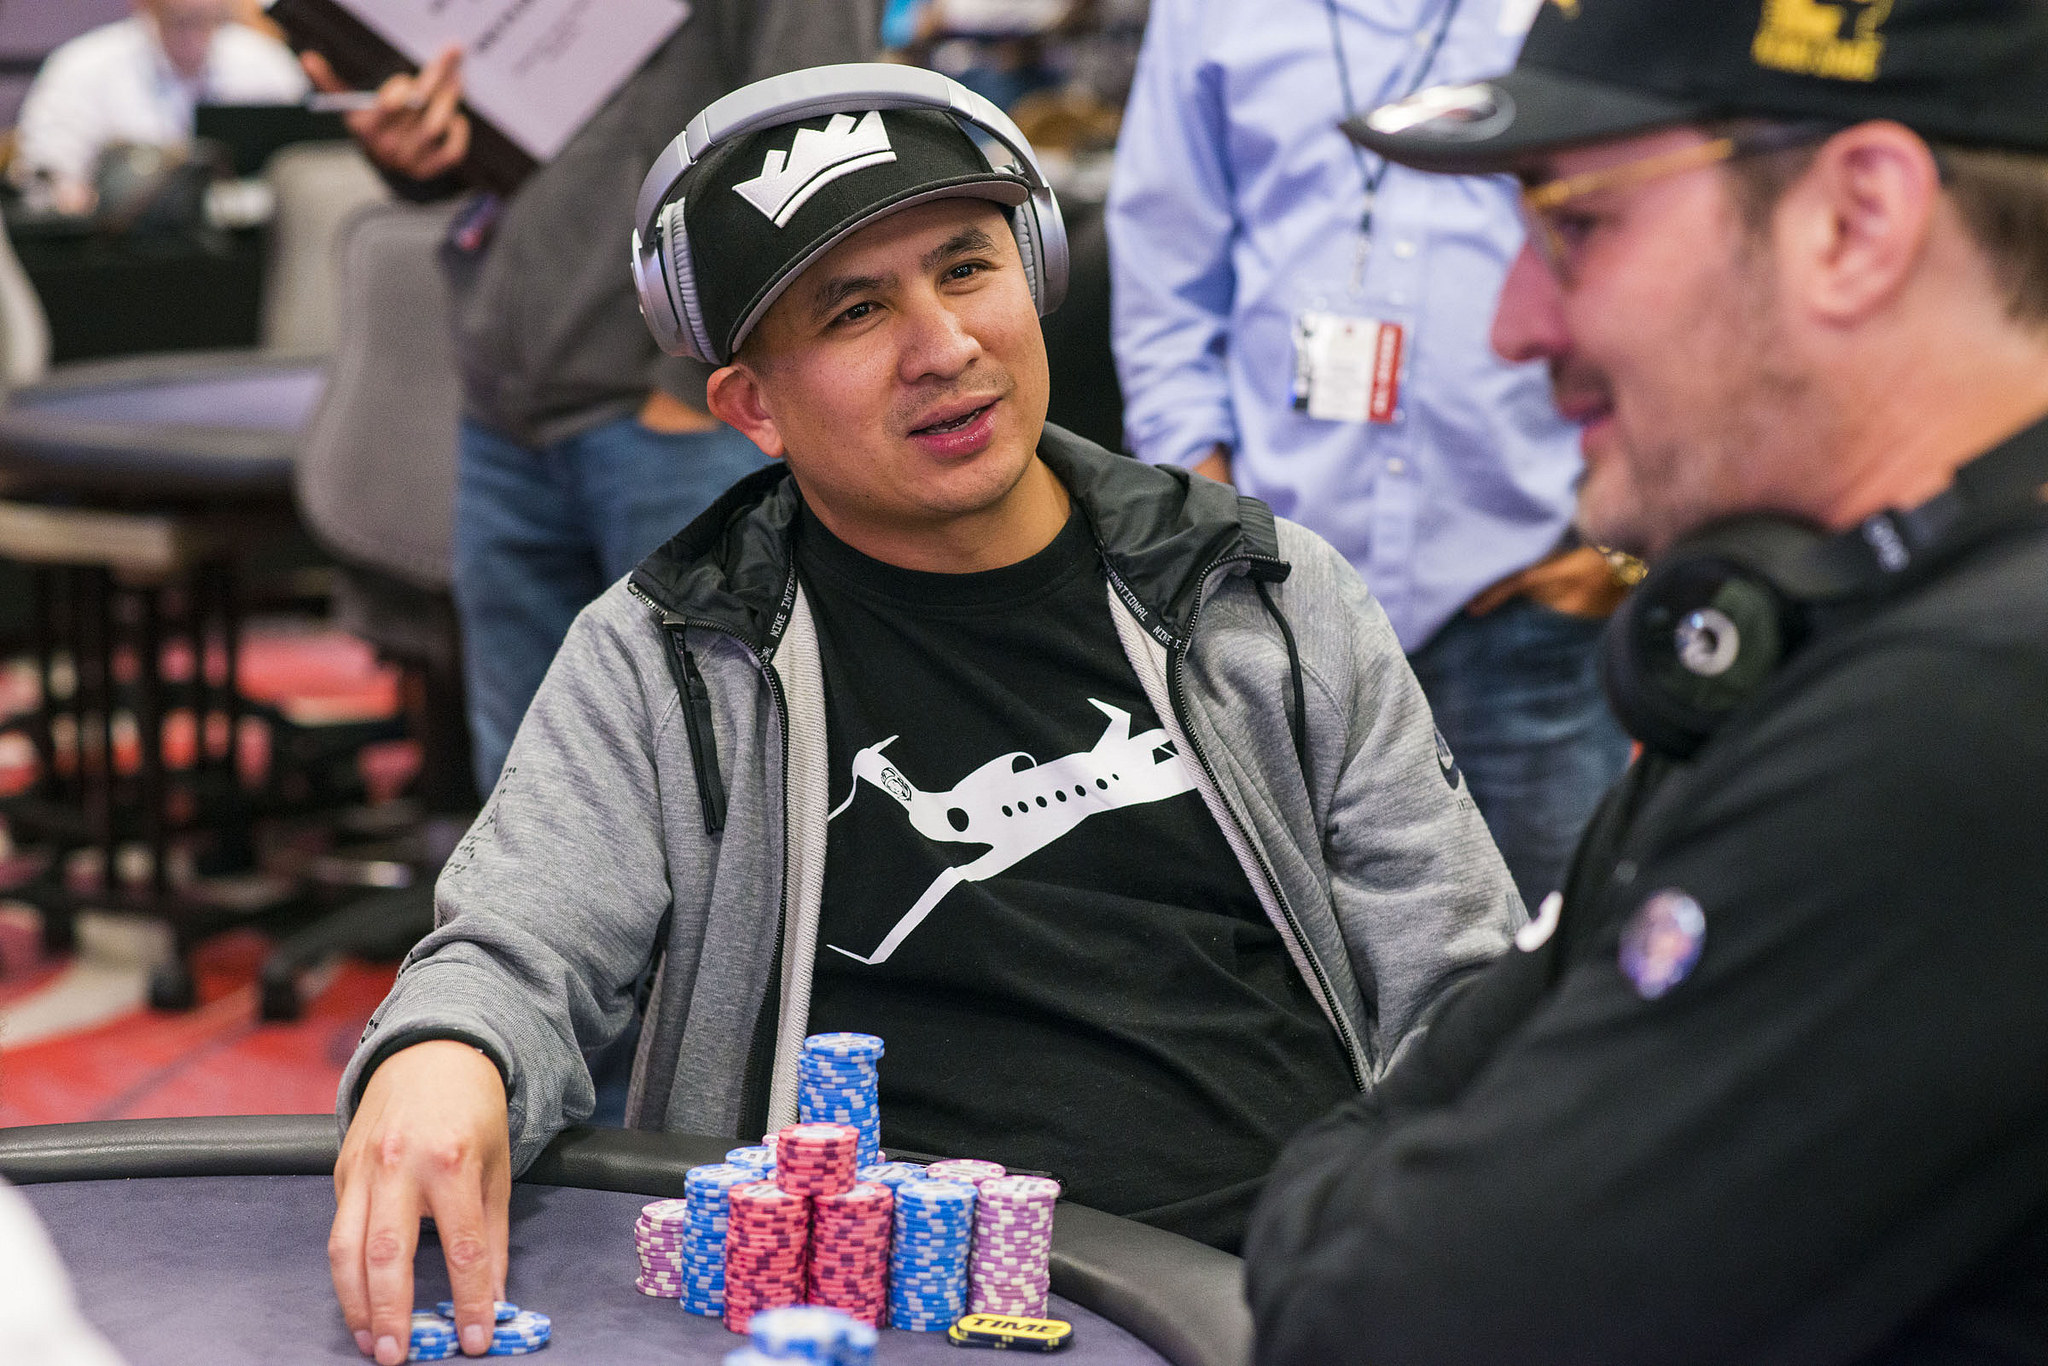 Phil Hellmuth vs. JC Tran at WPT Legends of Poker